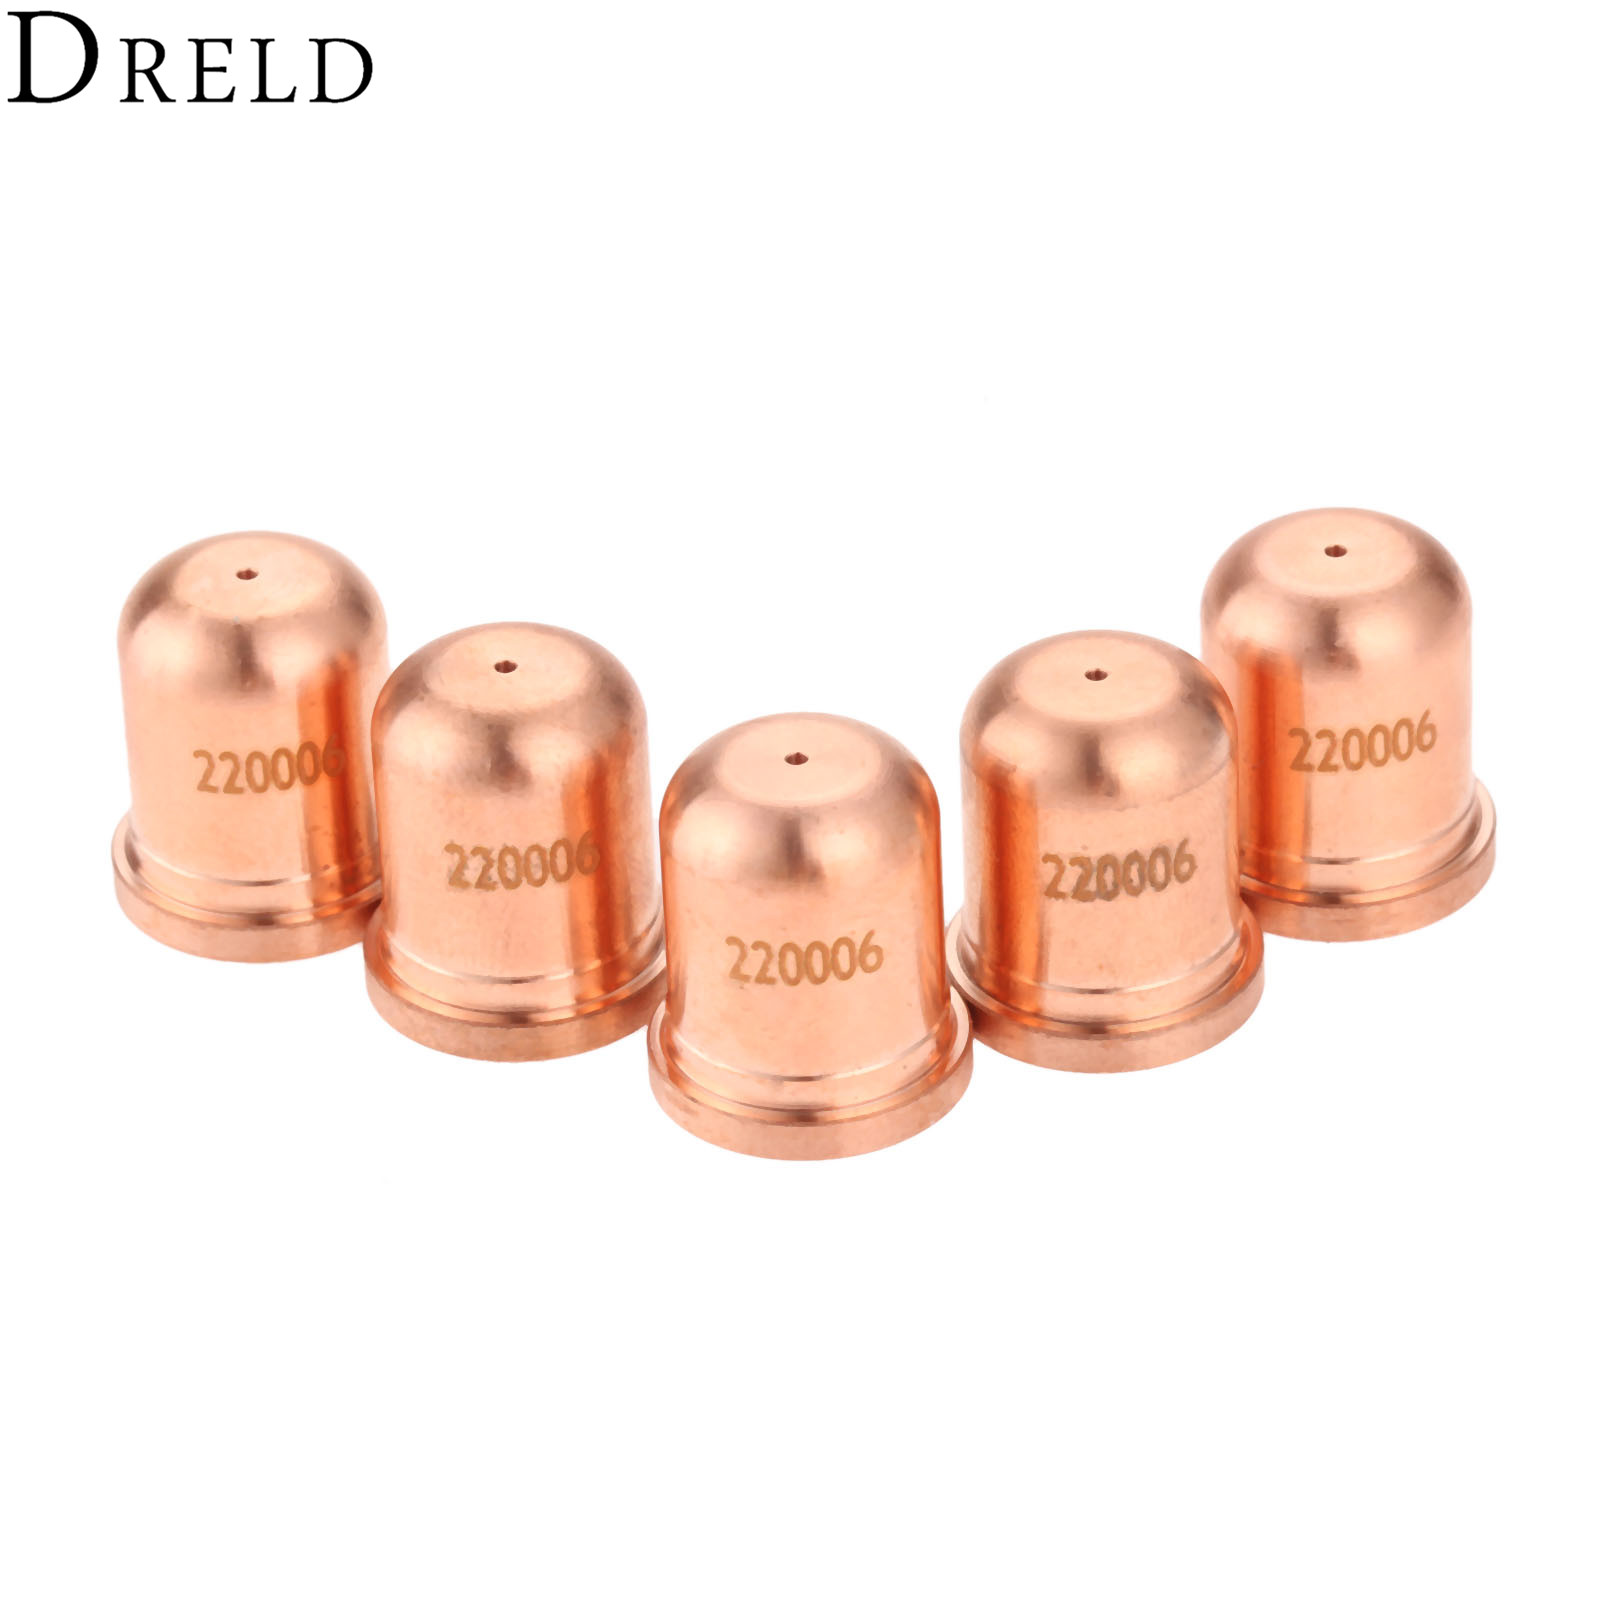 DRELD 5Pcs 40A Nozzle/Tips 220006 Fit For 1000 1250 1650 RT60 RT80 Plasma Cutting Torch Consumables Welding Soldering Supplies